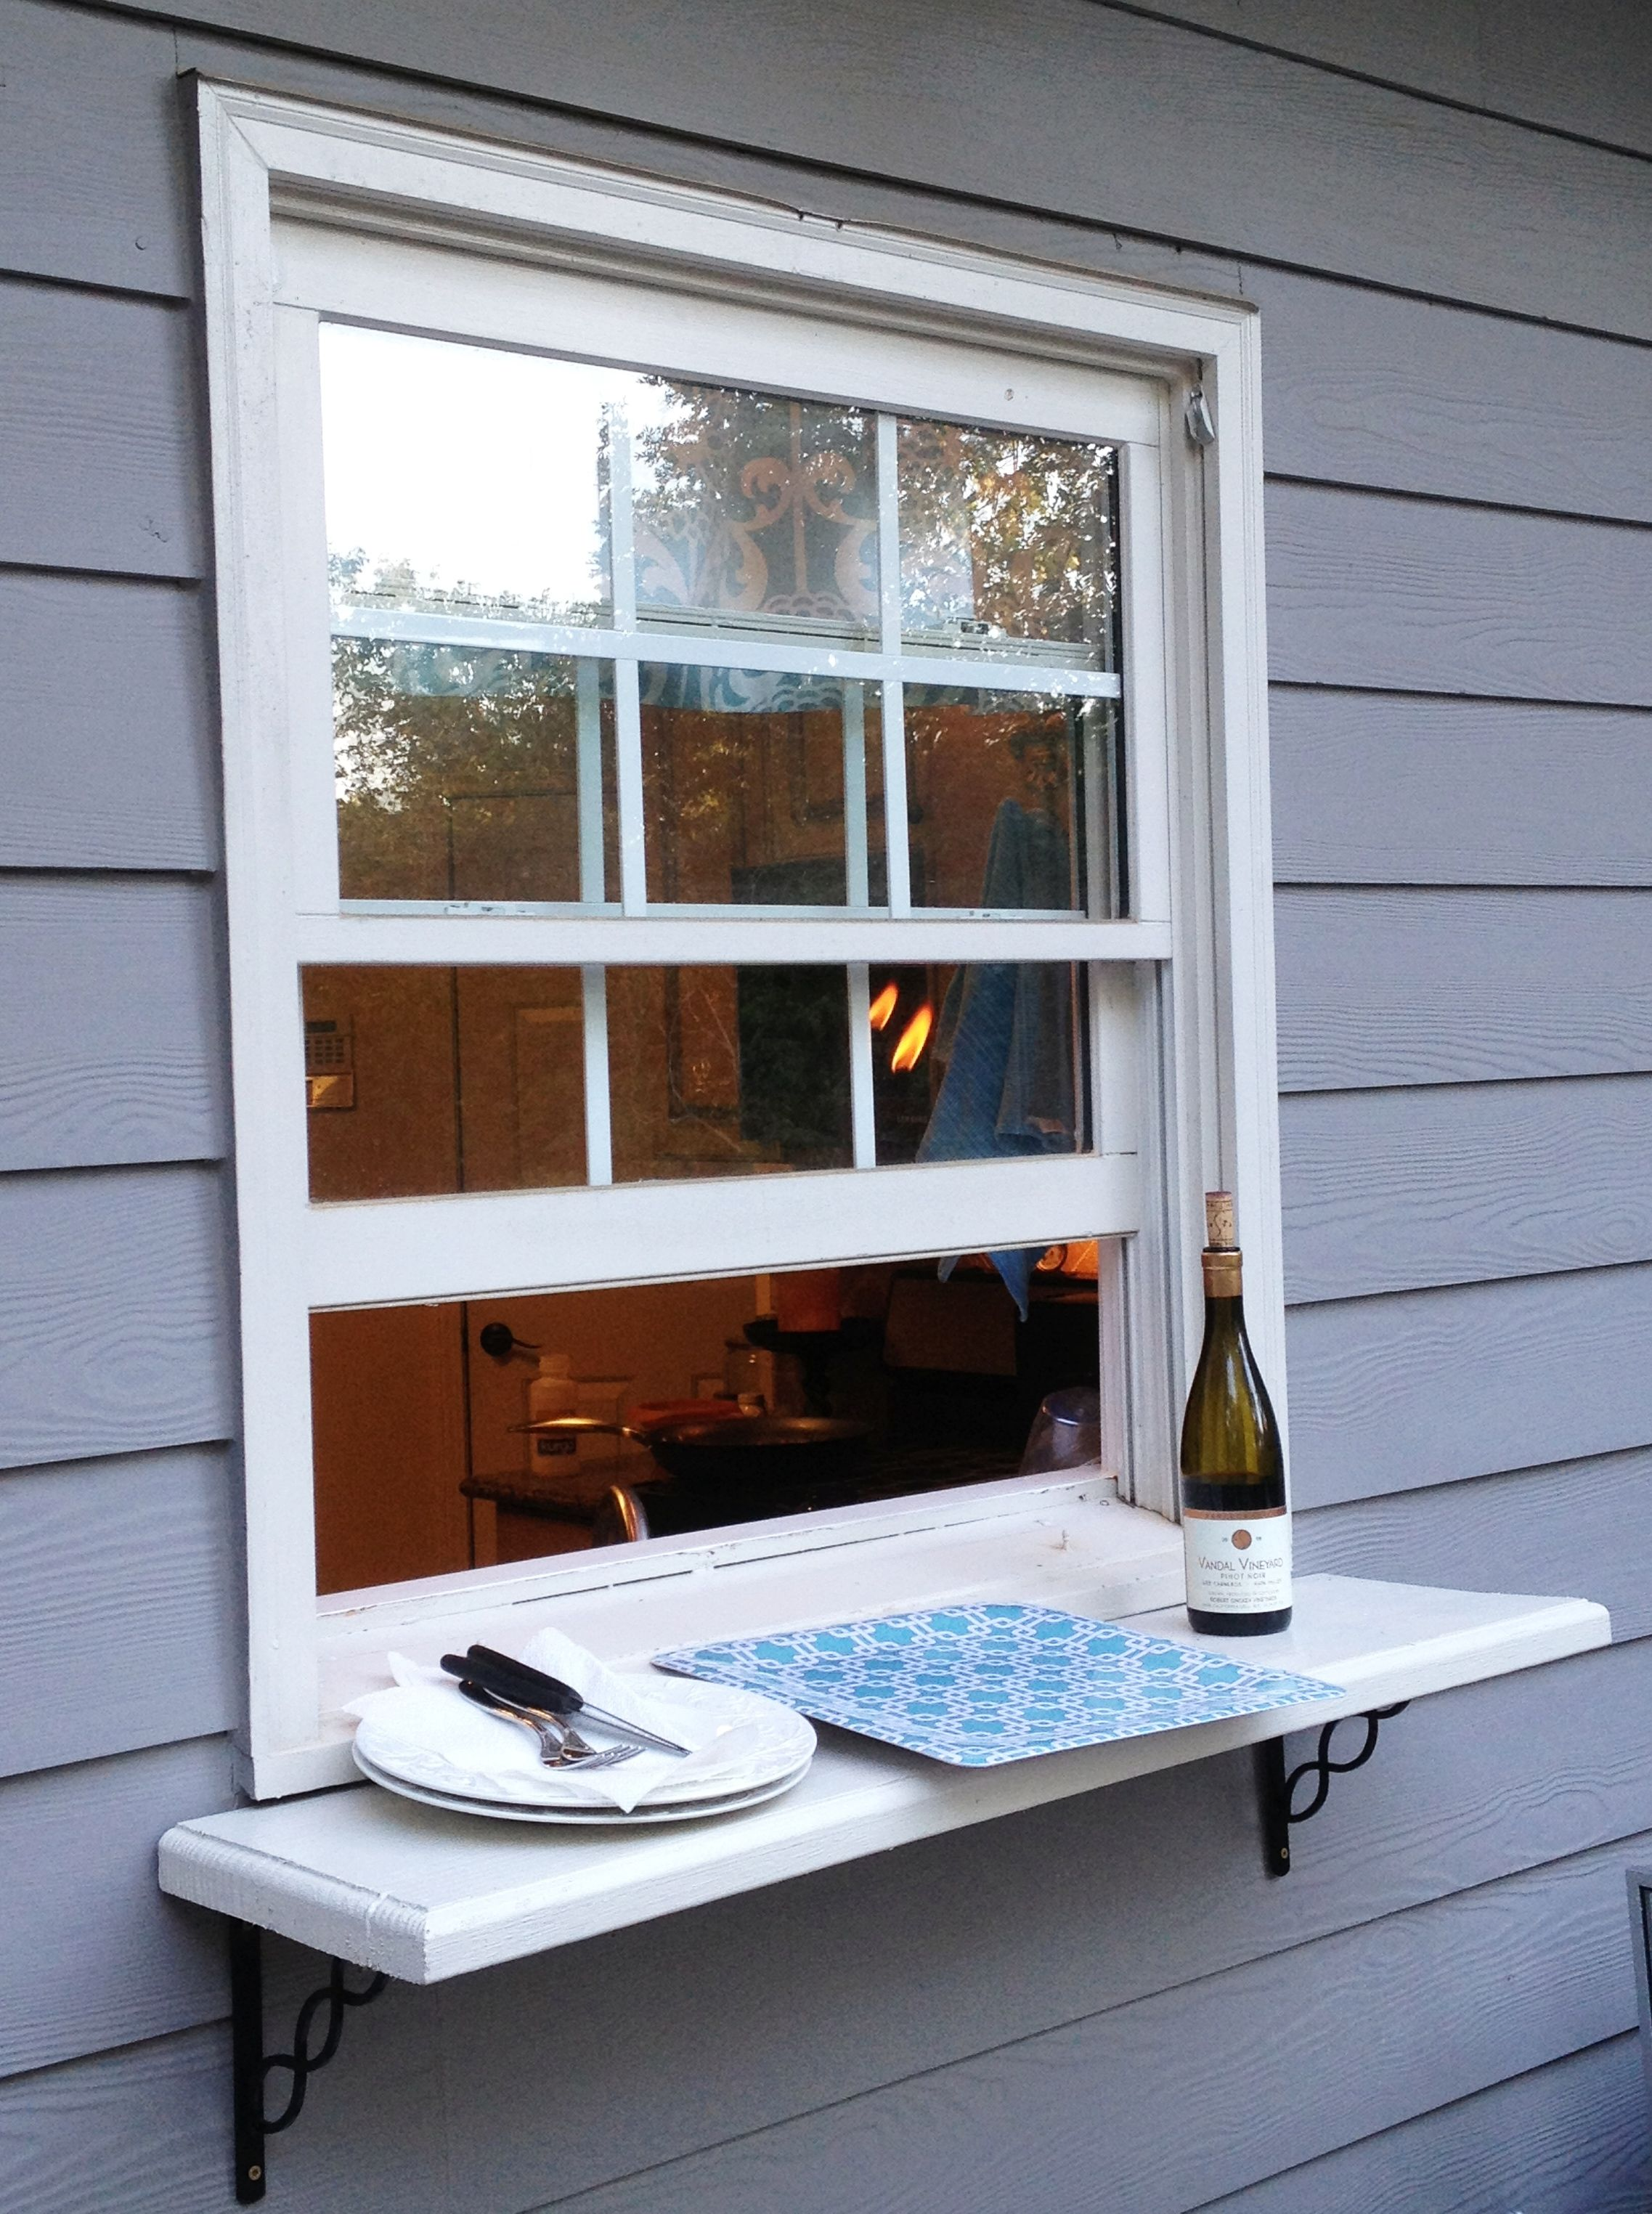 Genial Deck Window Shelf. Easy Pass Thru To The Outside From Kitchen!